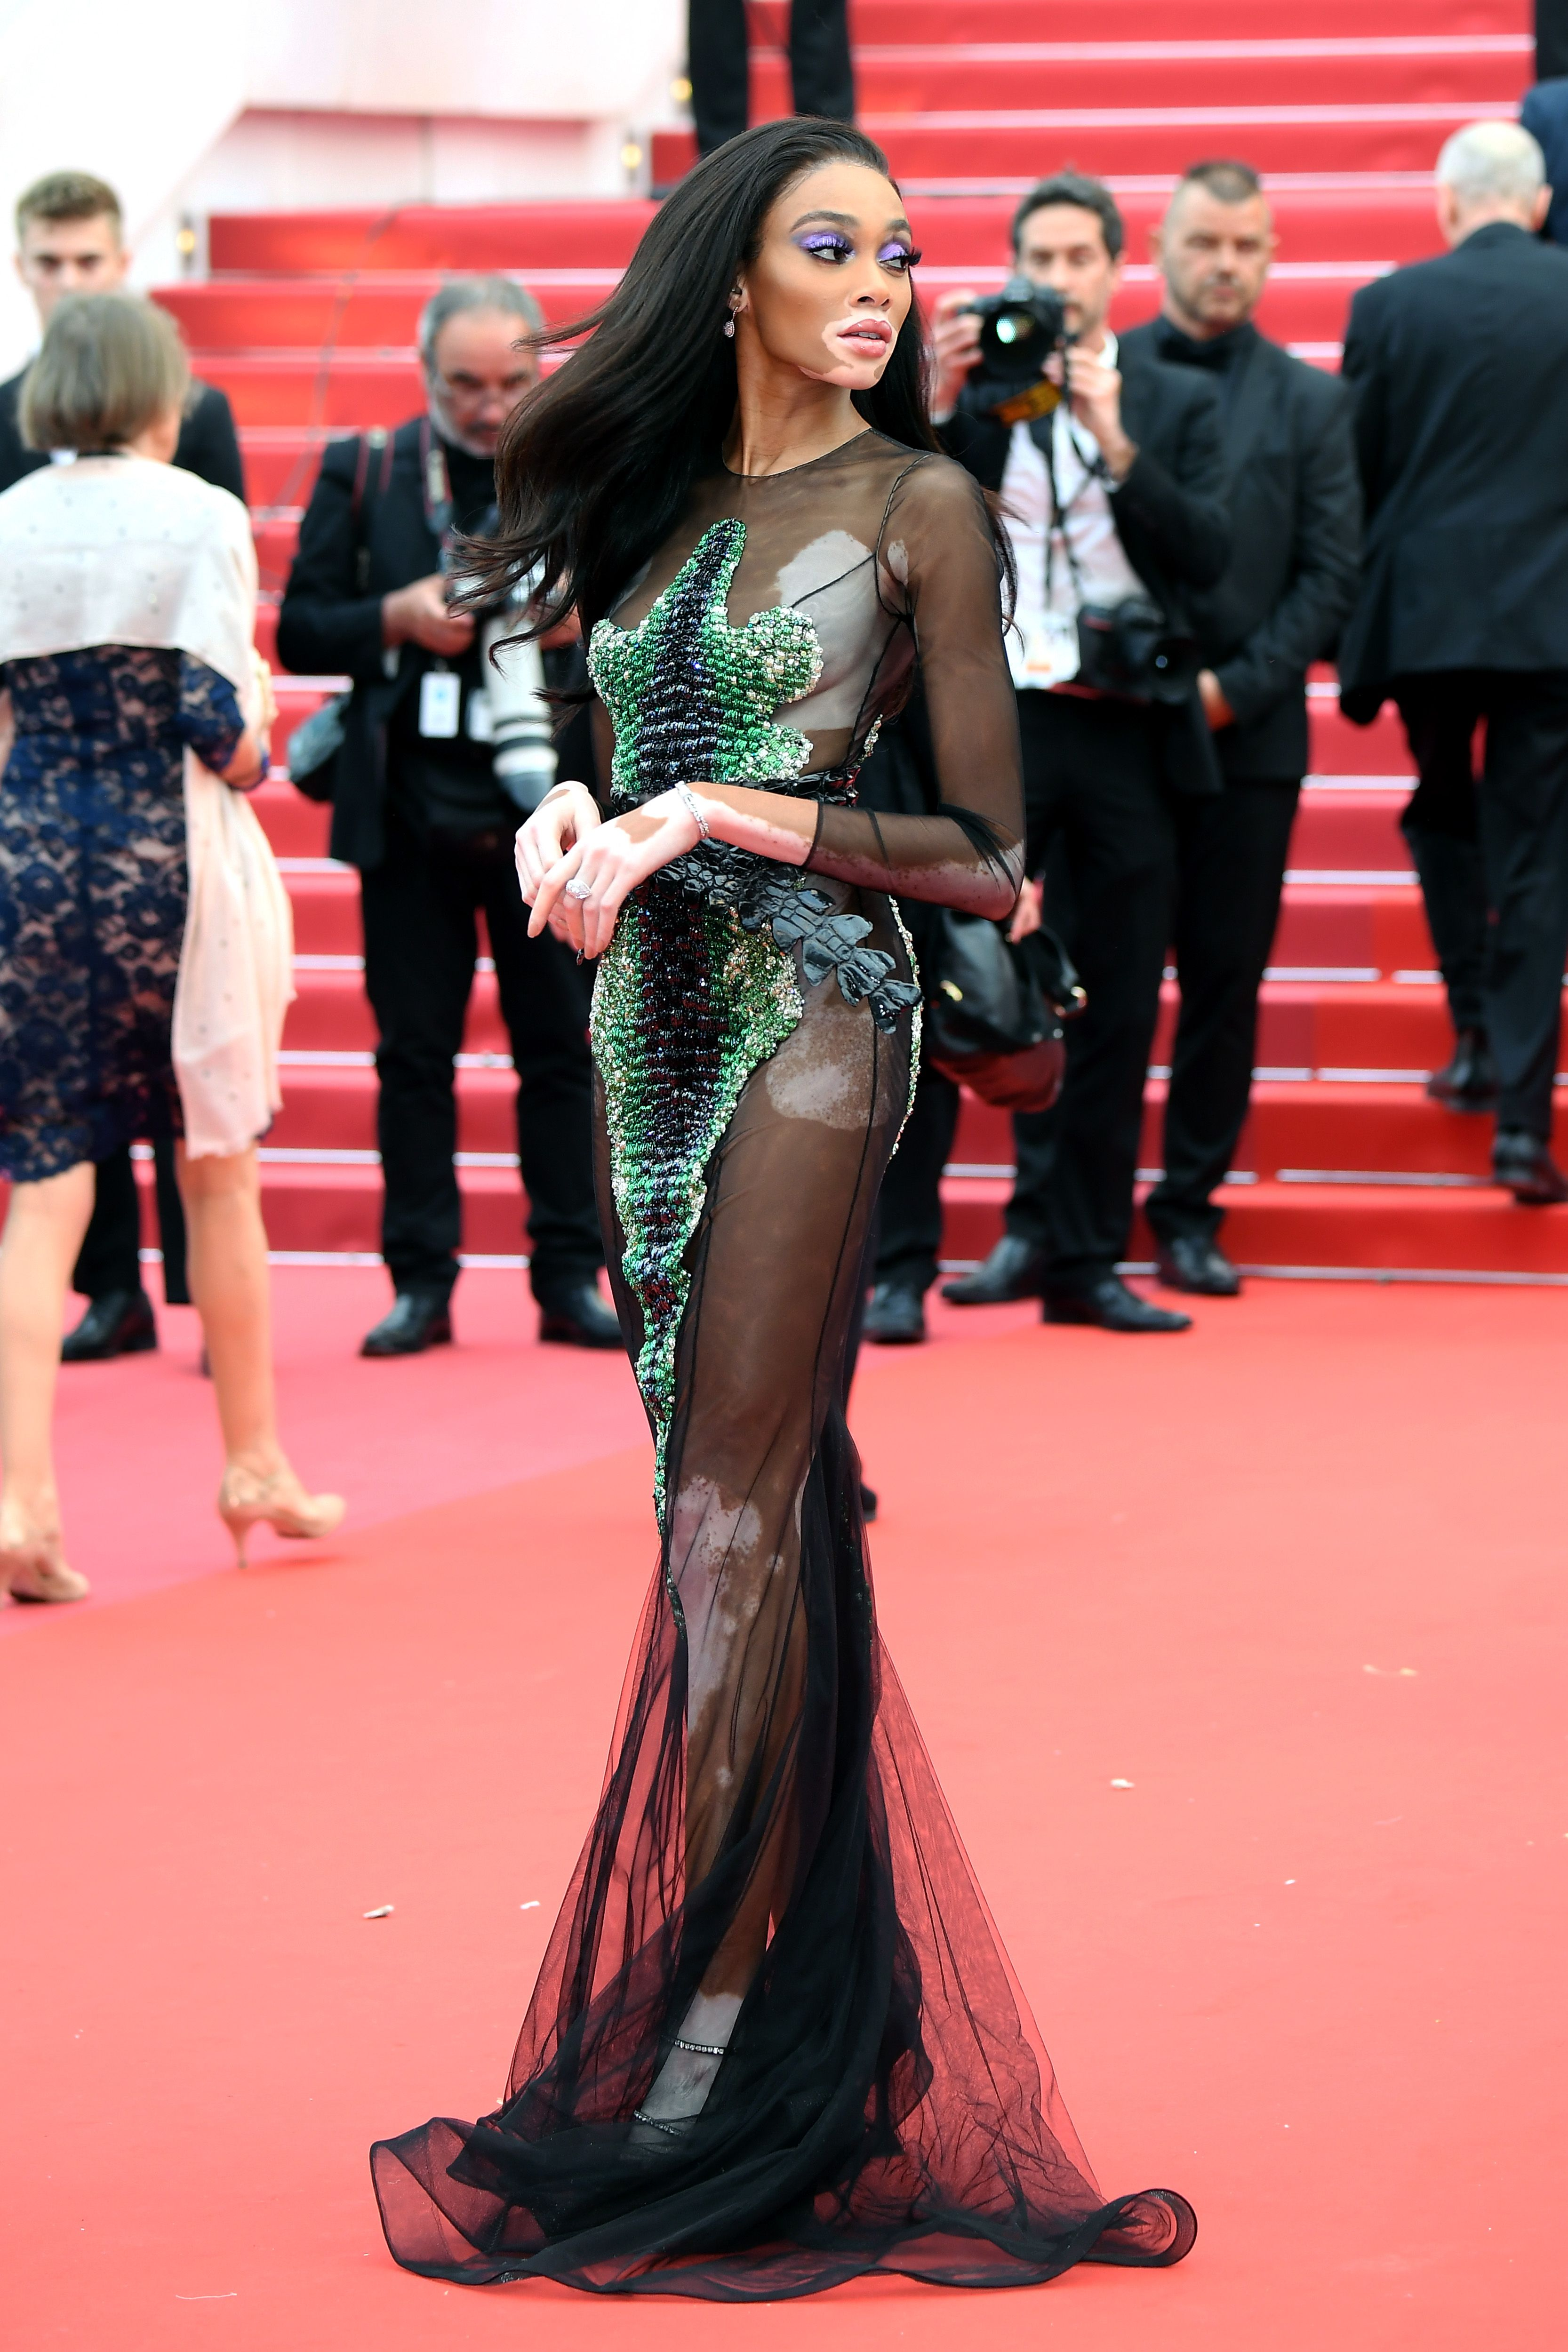 The Most Naked Red Carpet Looks at Cannes Film Festival